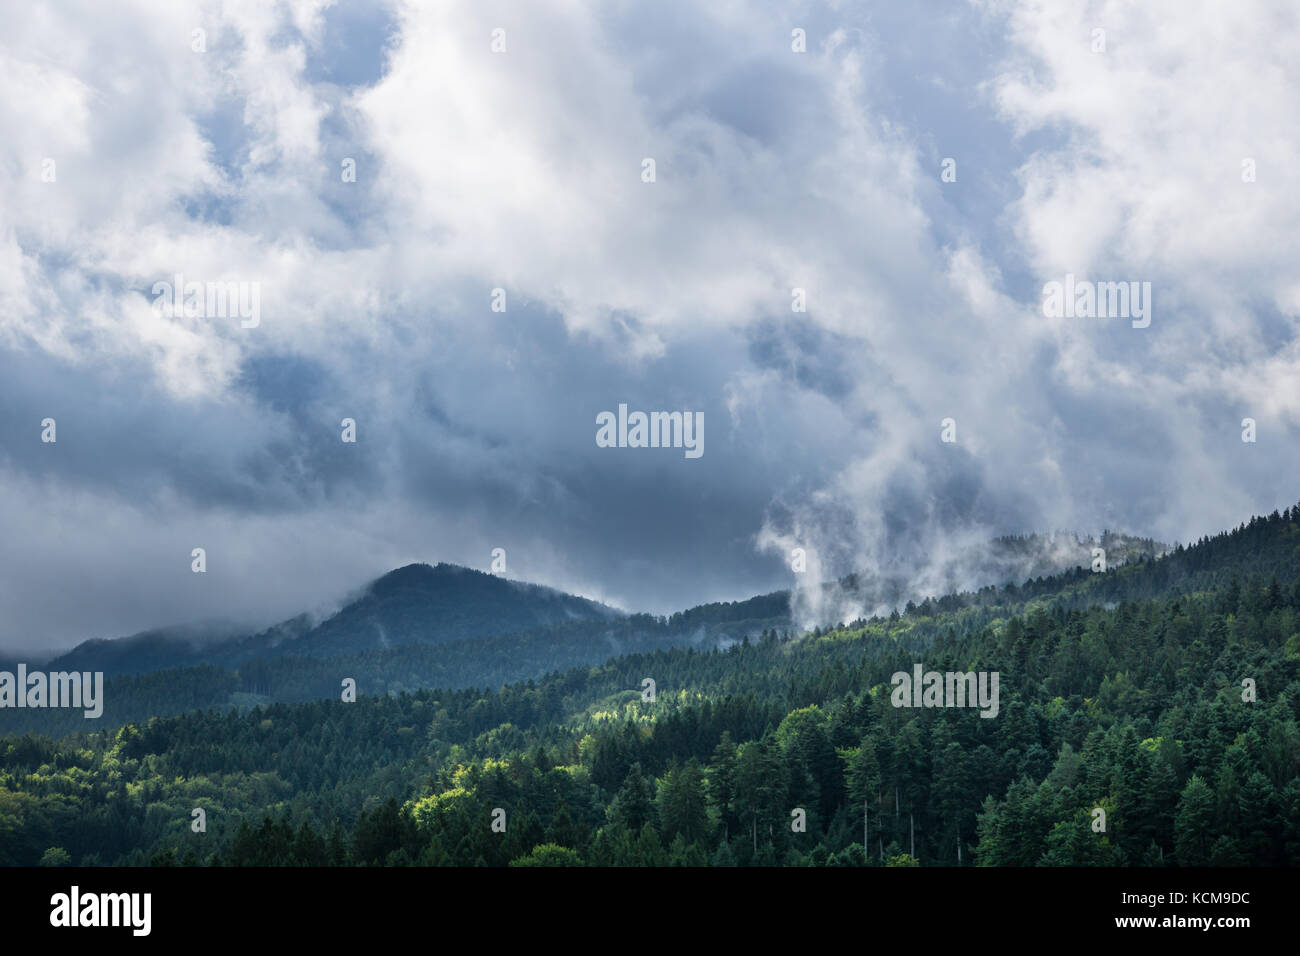 Waft of mist over black forest mountains with sun and rain clouds in autumn - Stock Image